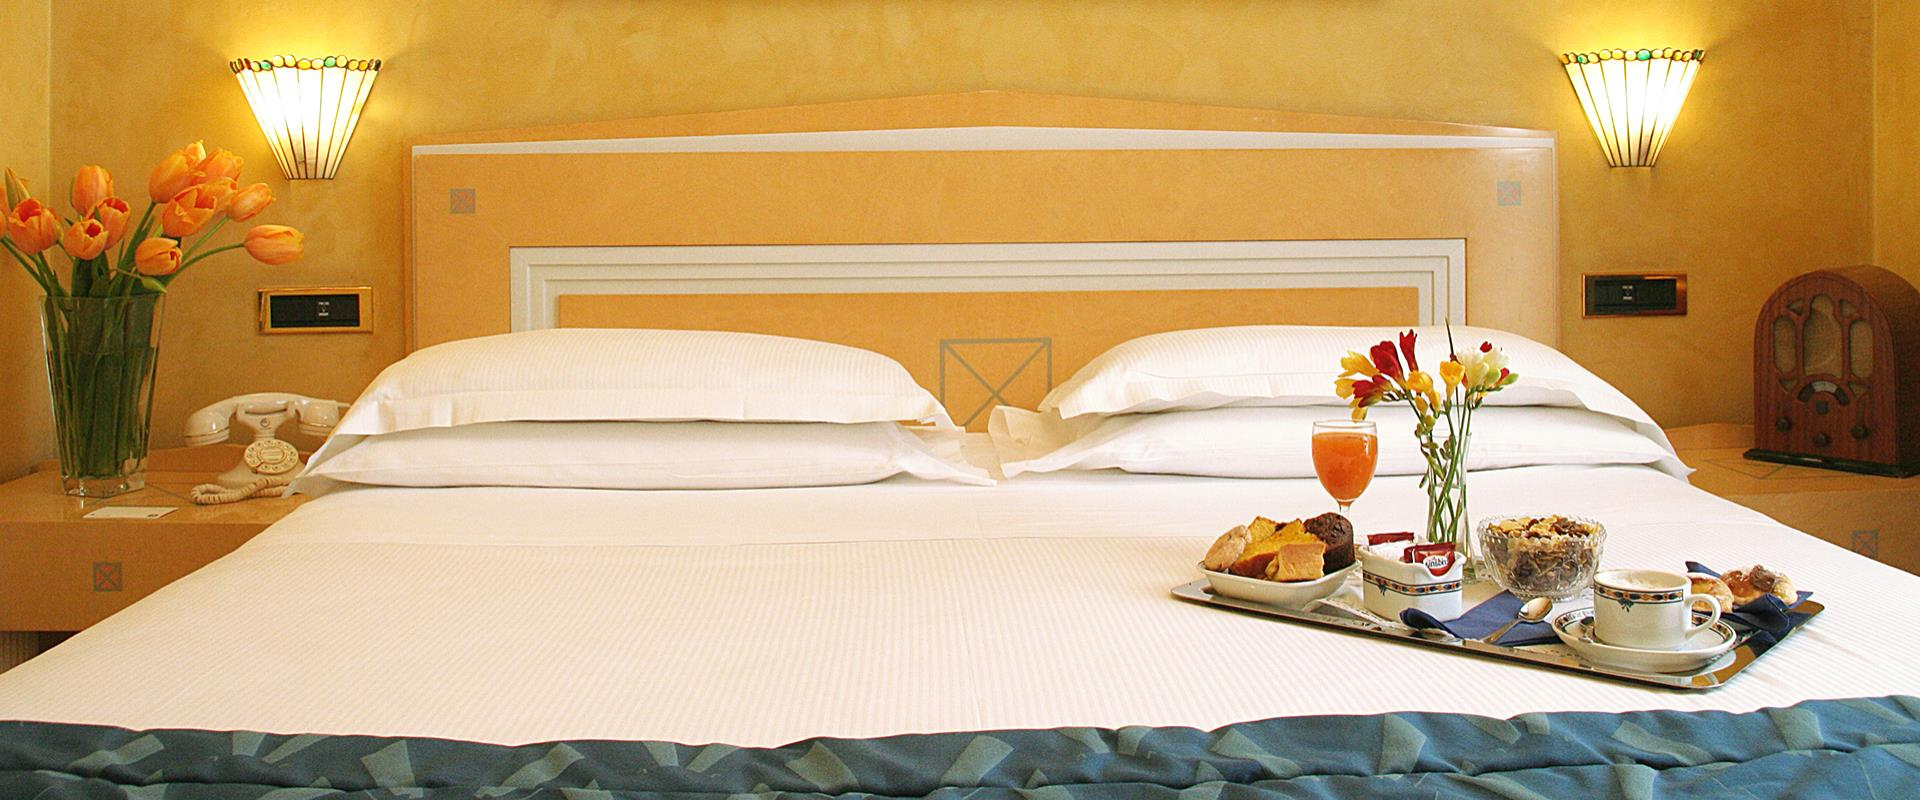 Book our confortable 4 star hotel in Rome and take advantage of unmissable offers.